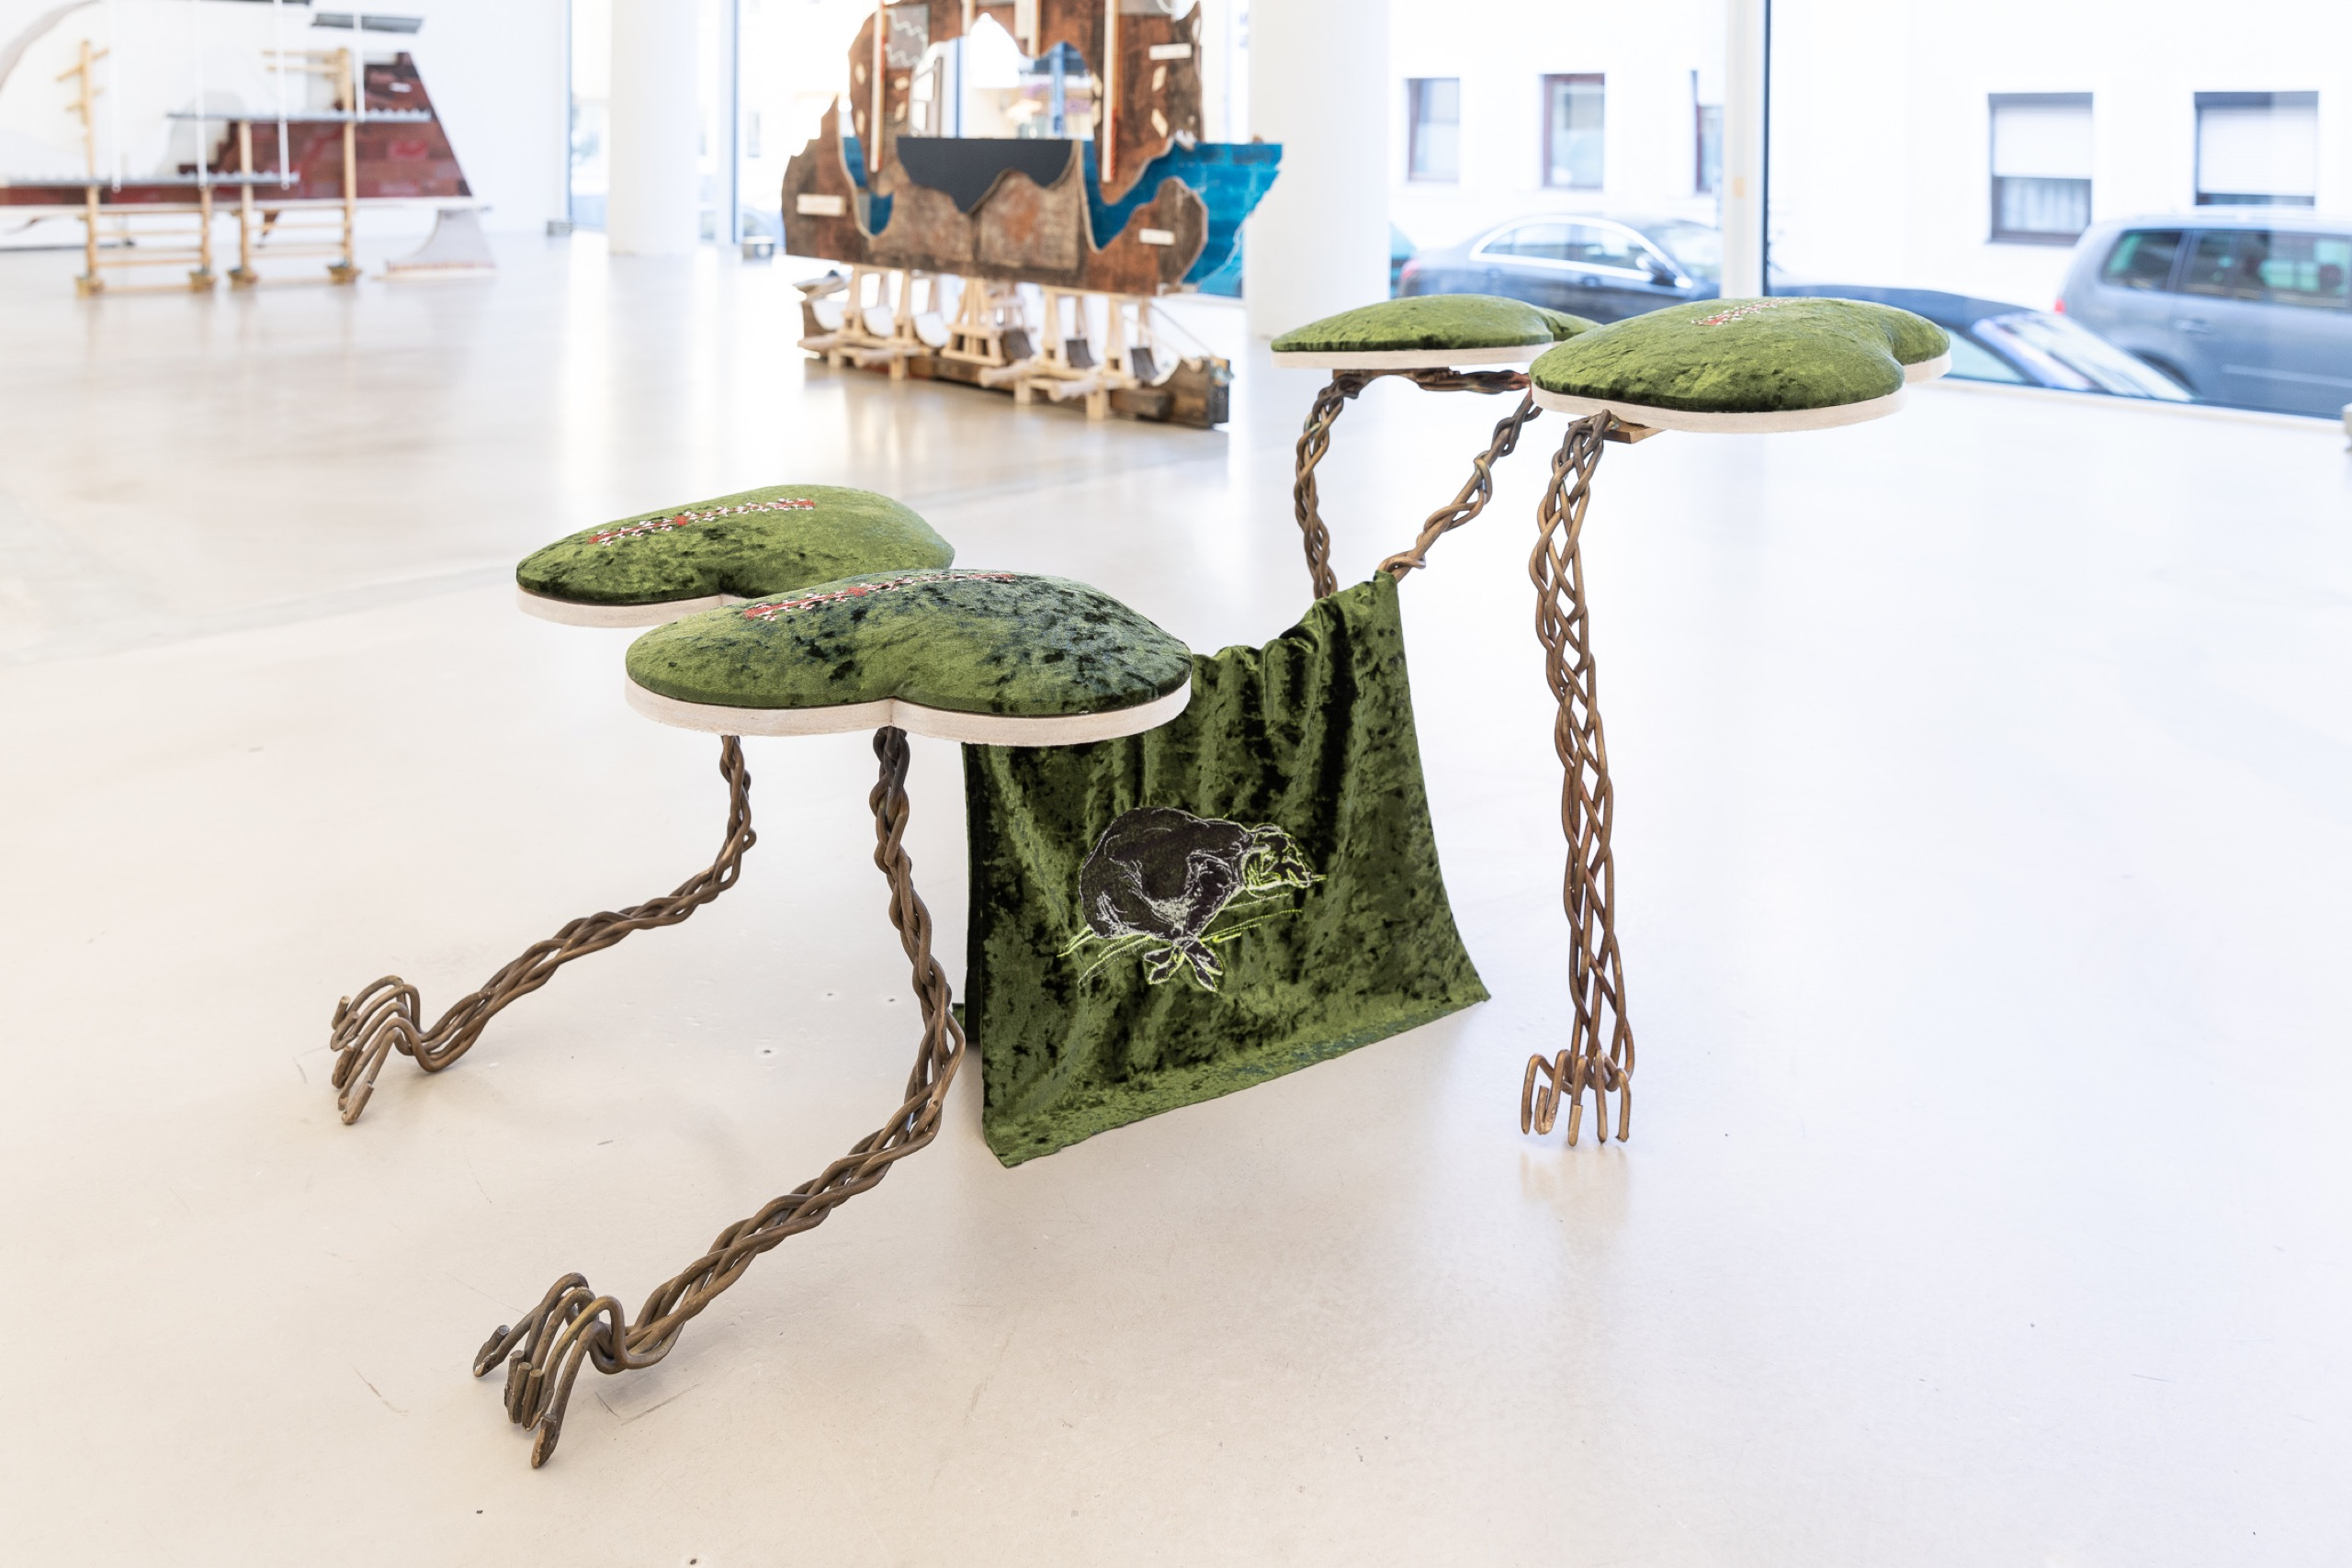 Brittni Ann Harvey, Lamb of God (bowing robot dog), 2021, embroidered polyester, plywood, polypill, bronze